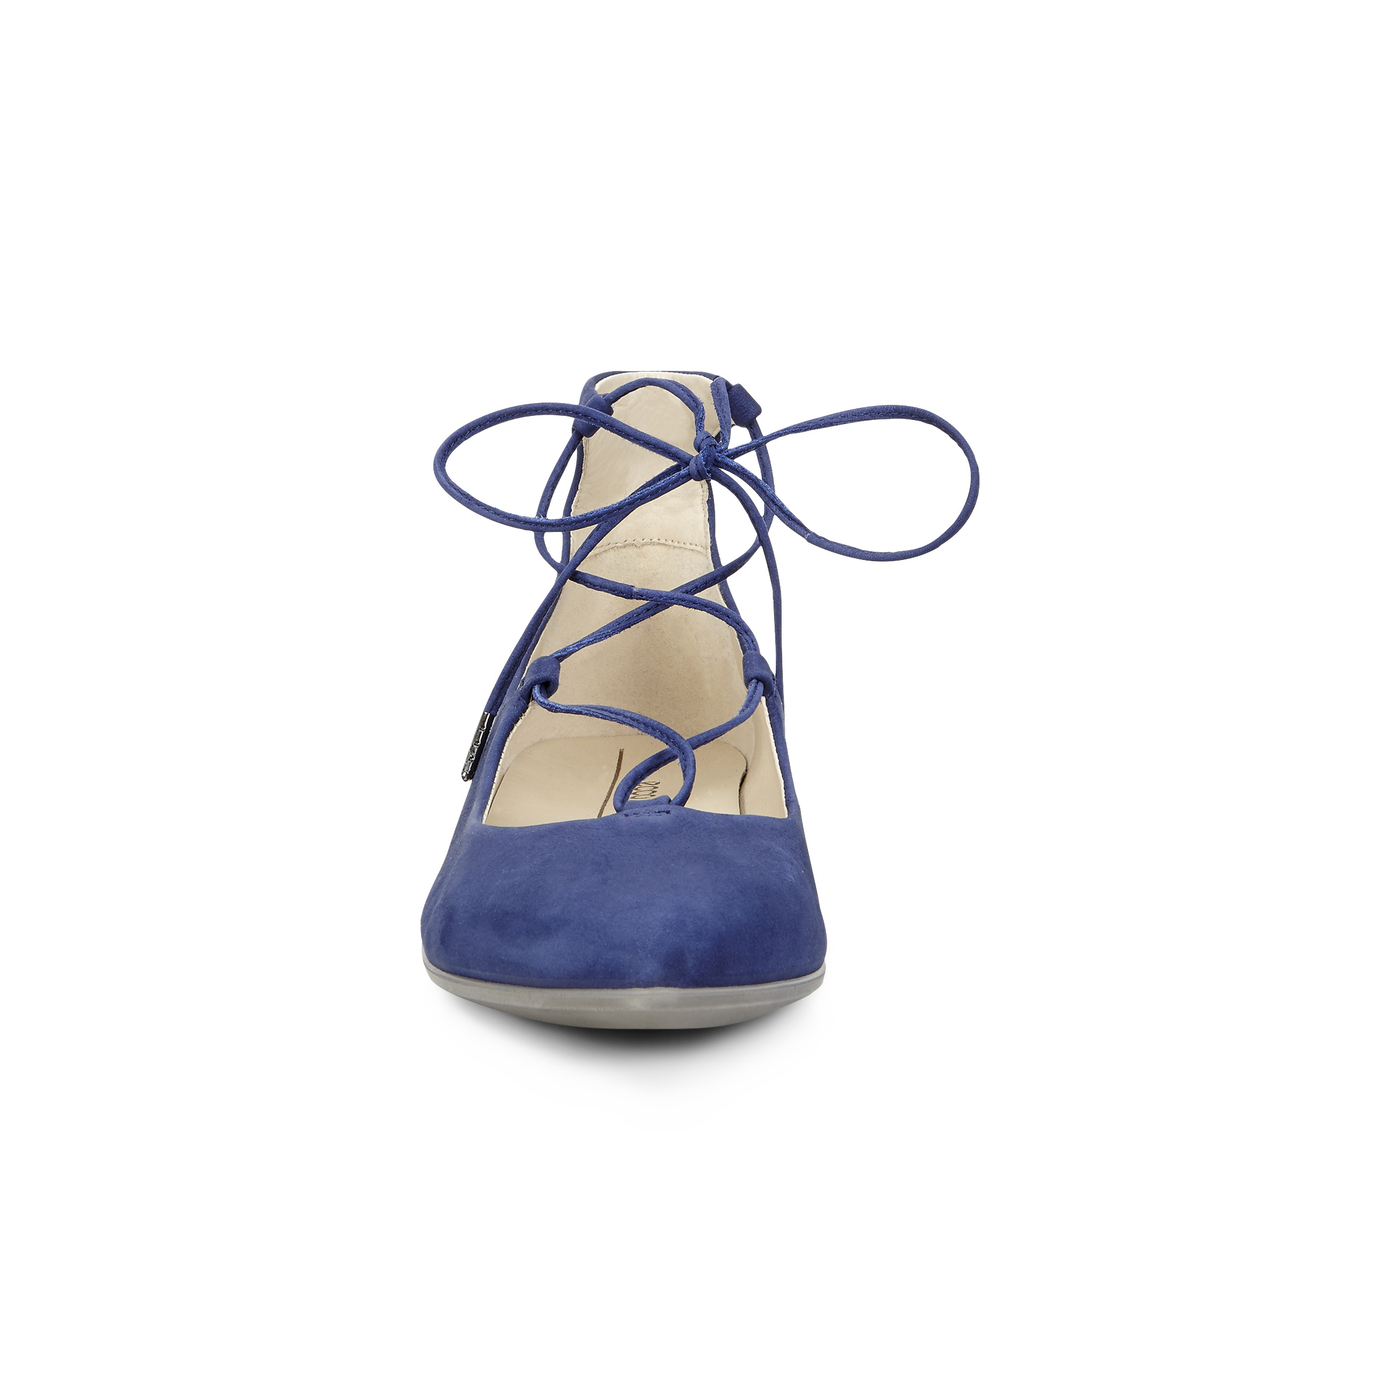 ECCO SHAPE POINTY Tie Up Ballerina